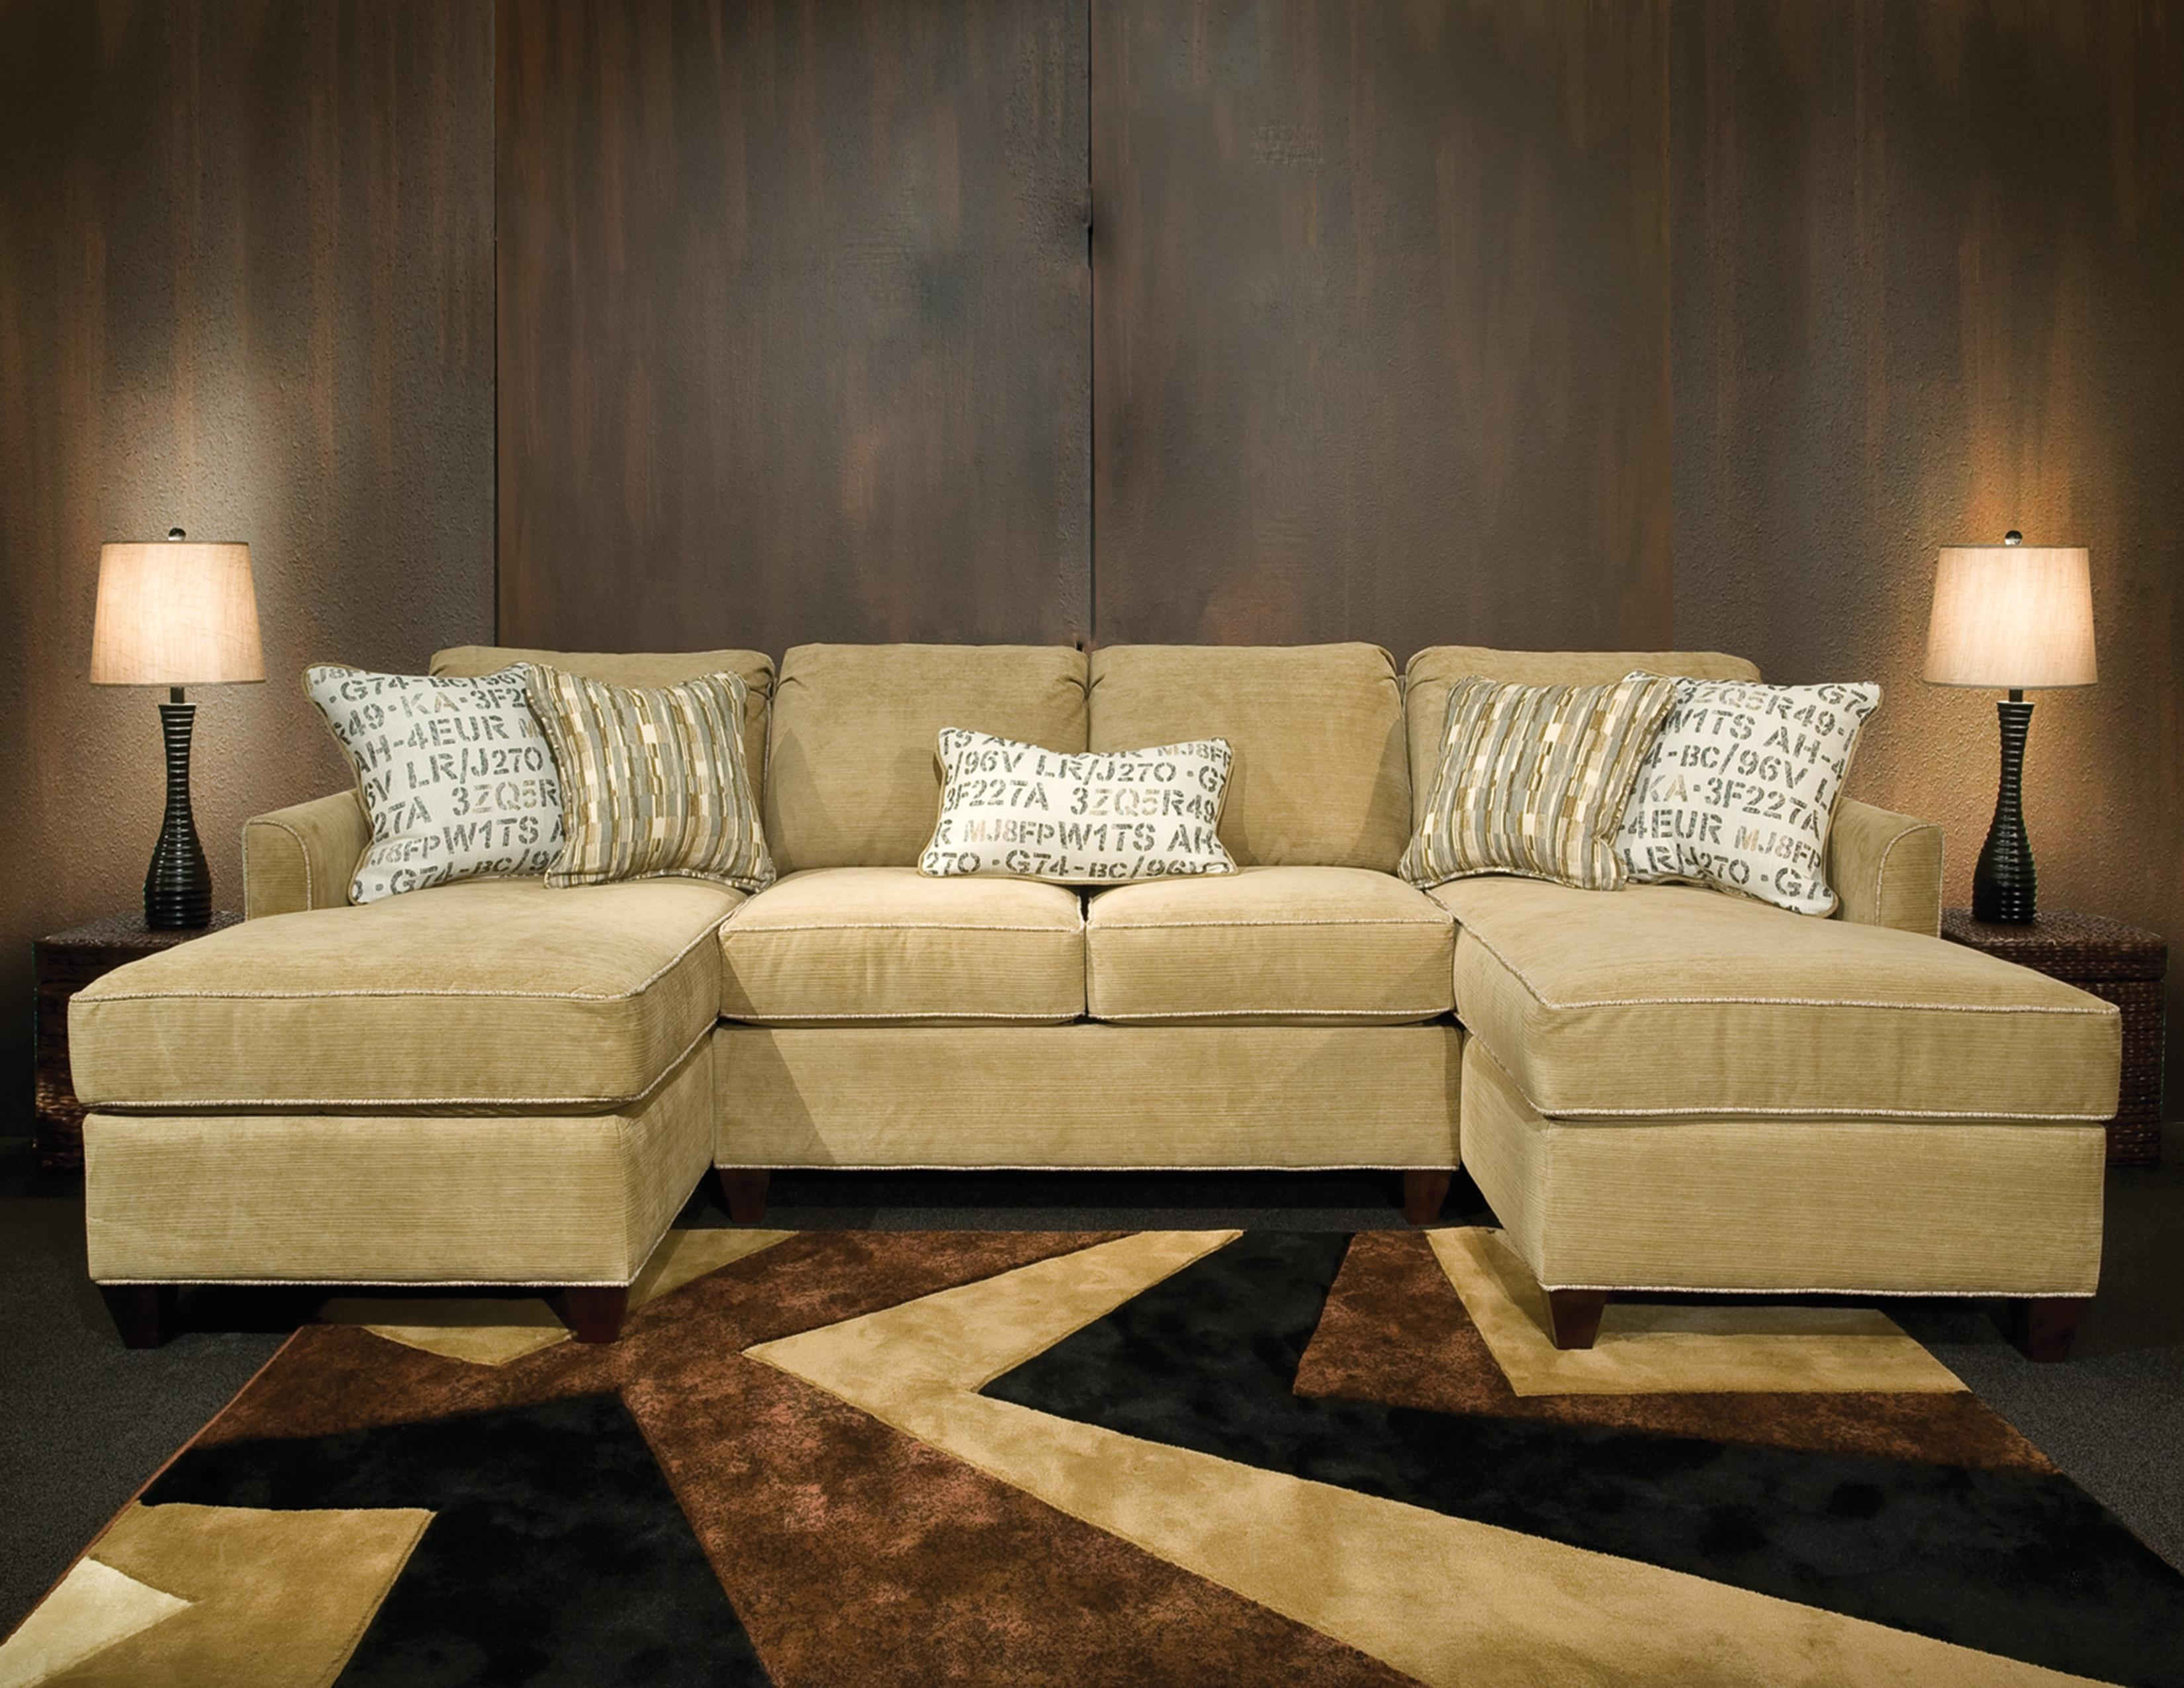 Double Chaise Lounge Furniture | Tehranmix Decoration For Sofas And Chaises Lounge Sets (Image 9 of 20)